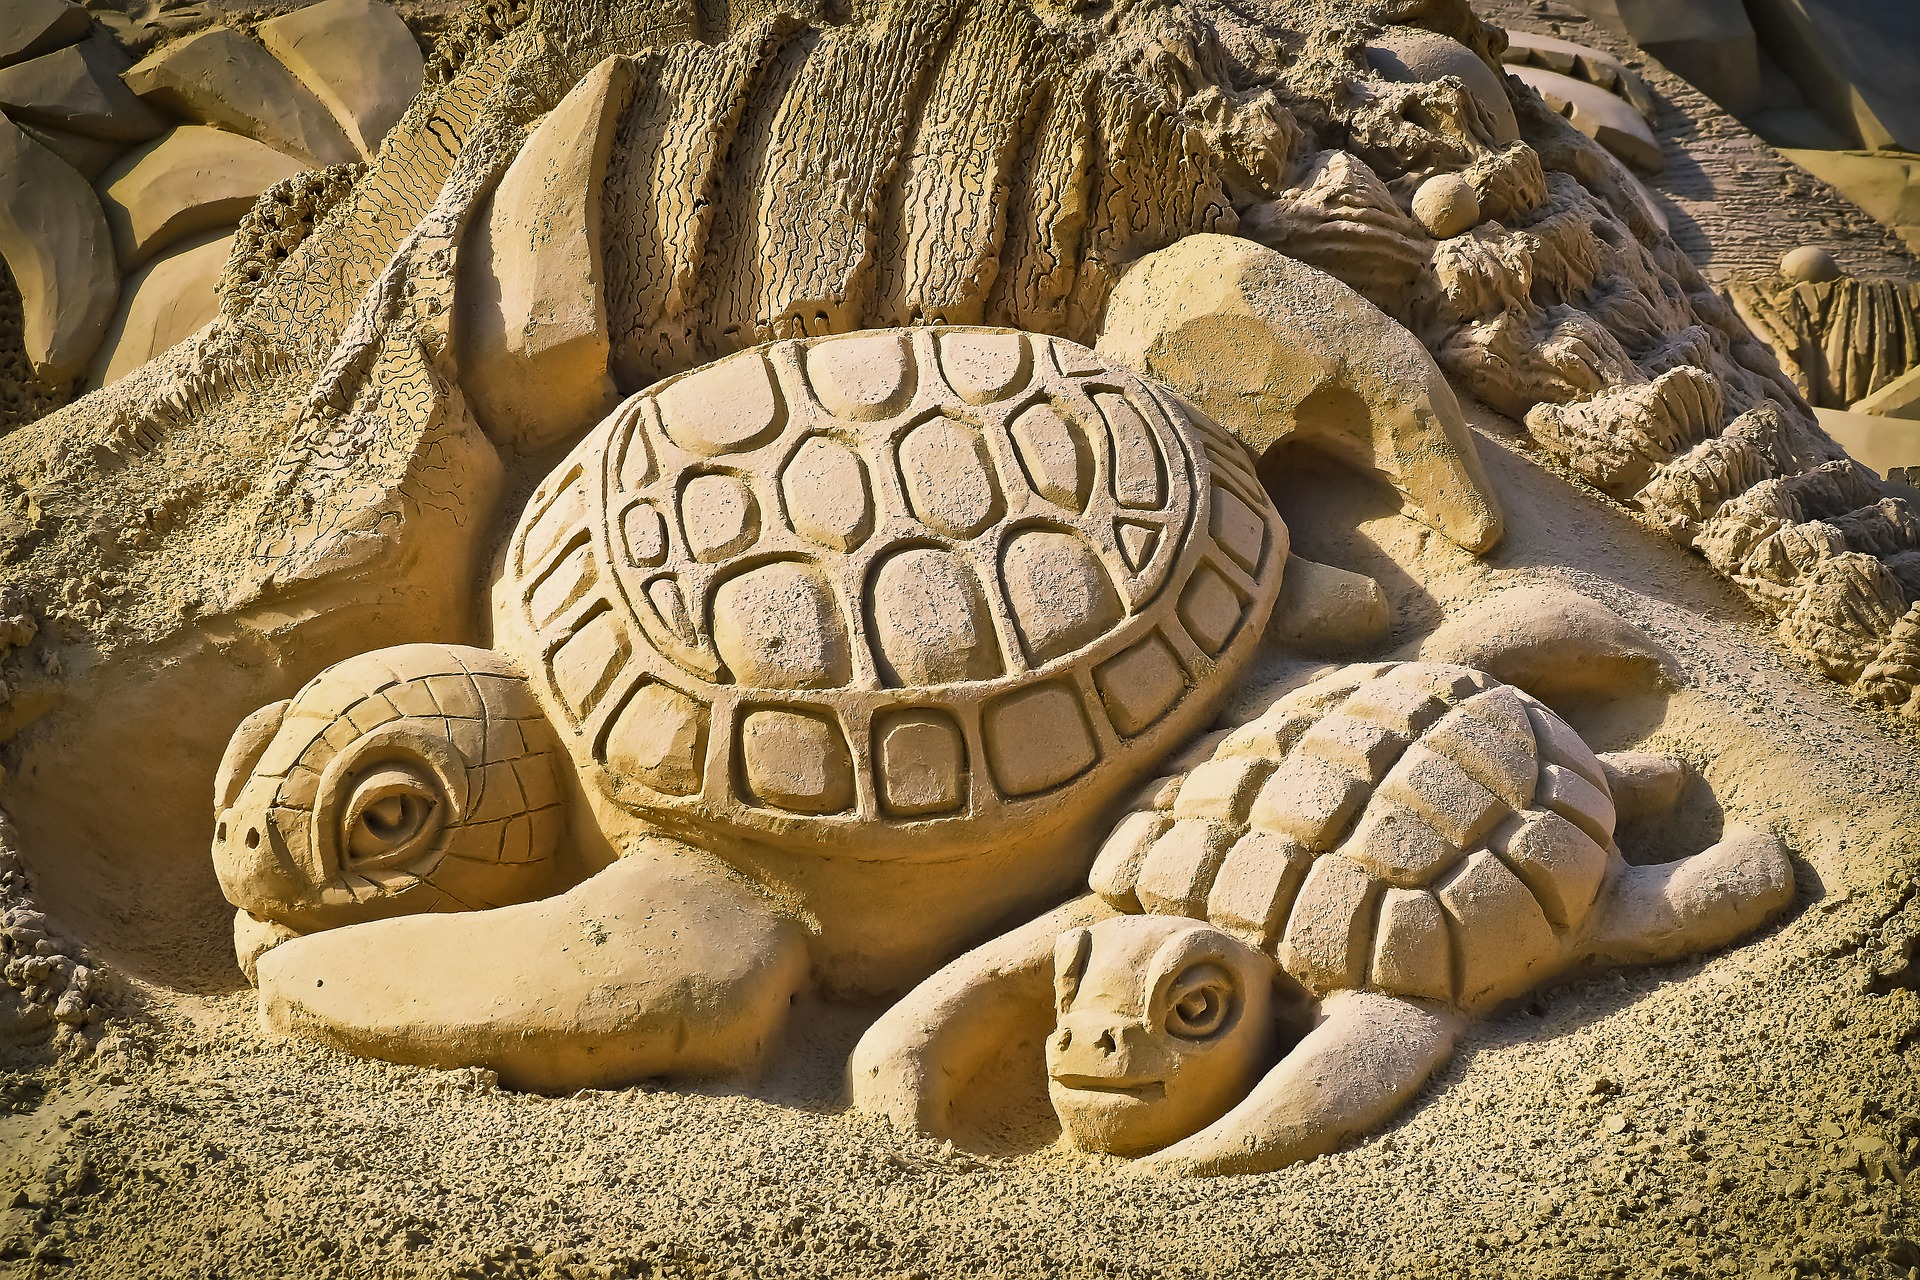 Turtles carved from sand